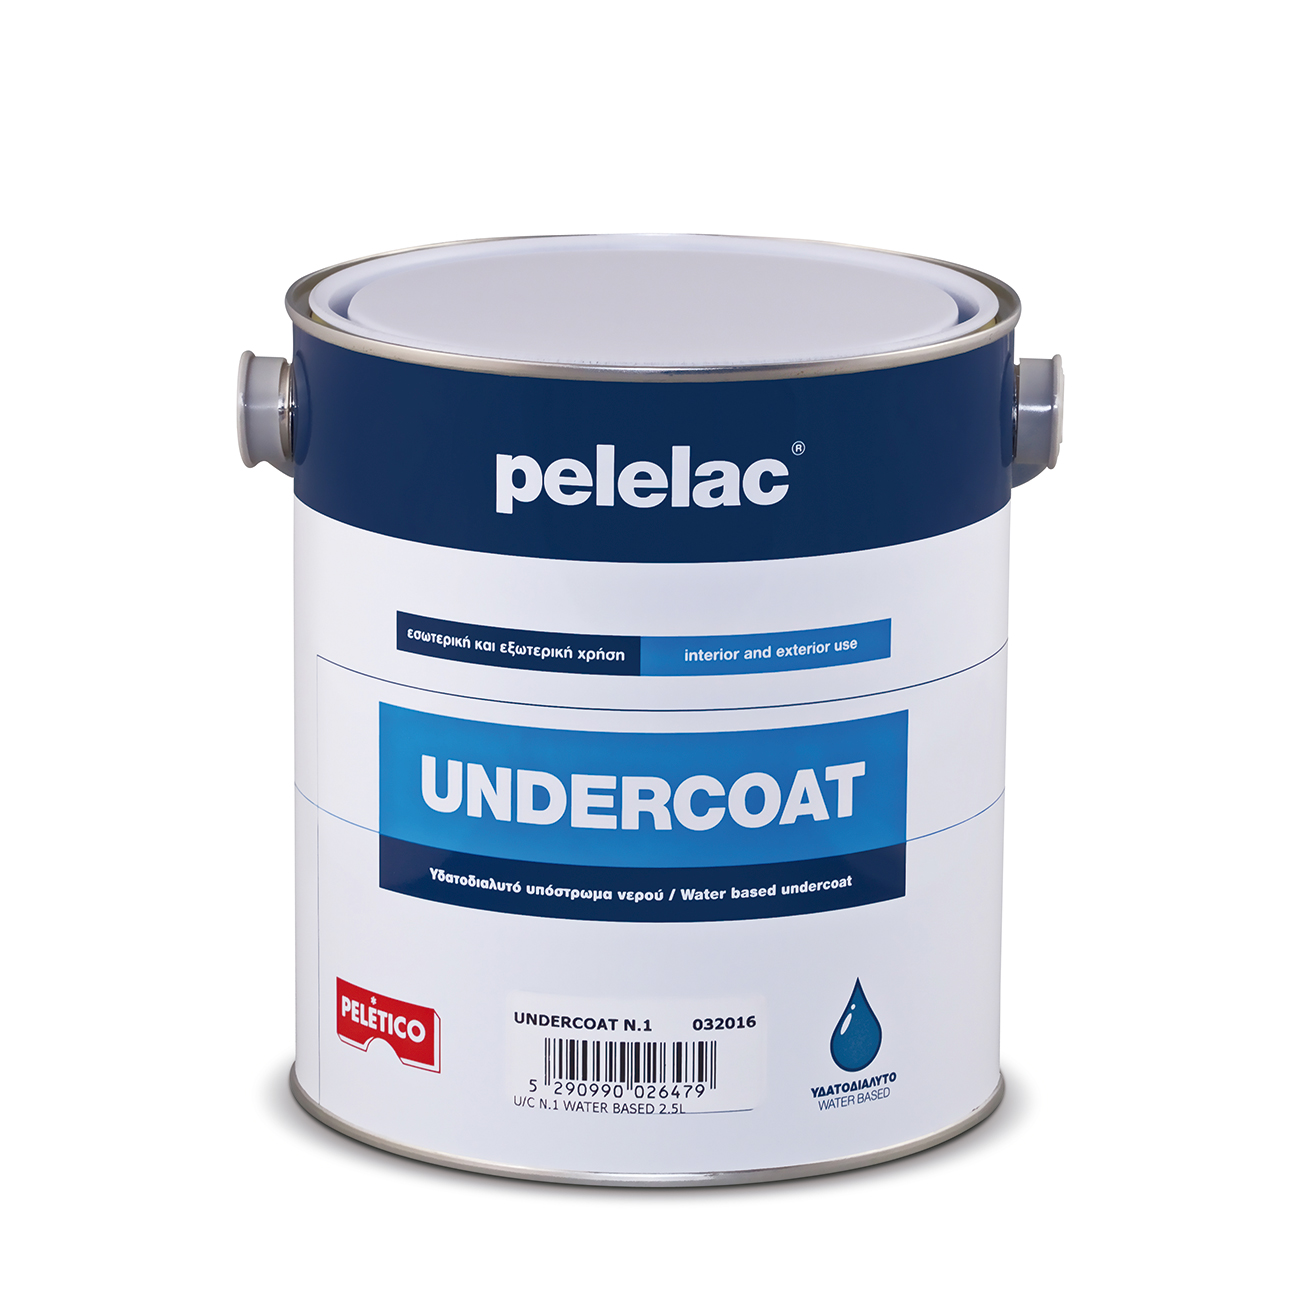 PELELAC UNDERCOAT N.4 WATER BASED 1/2L